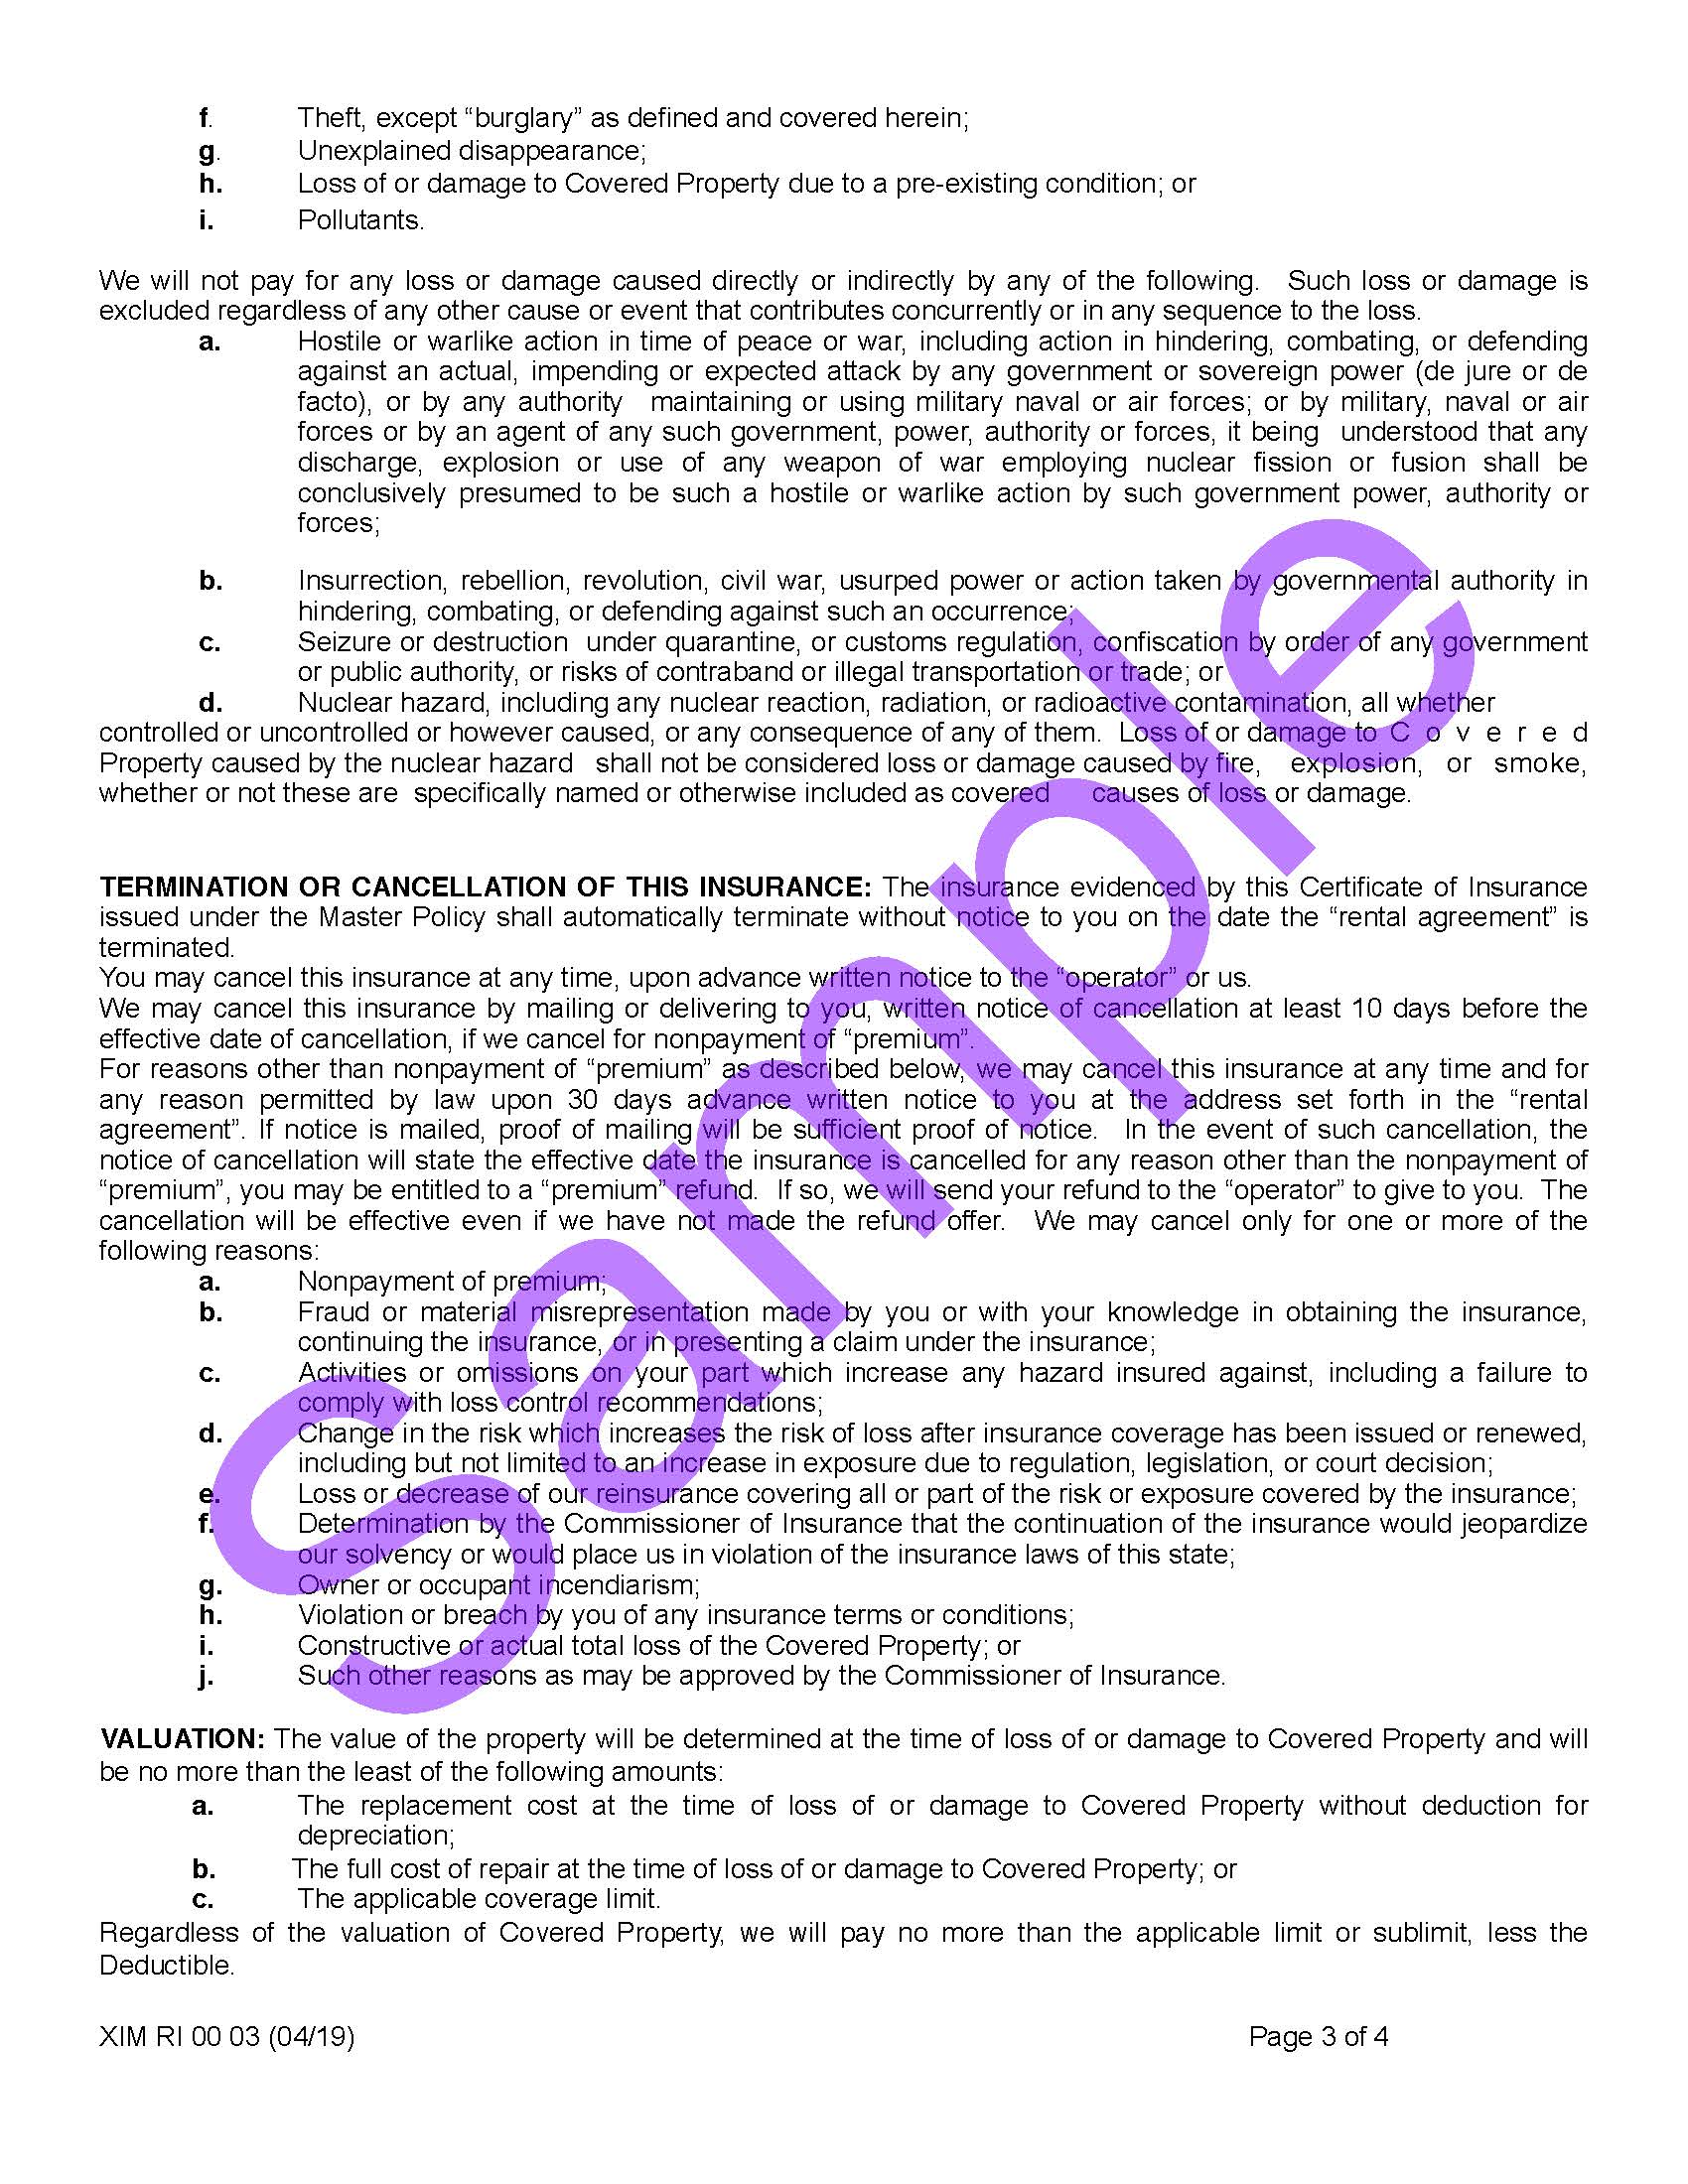 XIM RI 00 03 04 19 Rhode Island Certificate of InsuranceSample_Page_3.jpg